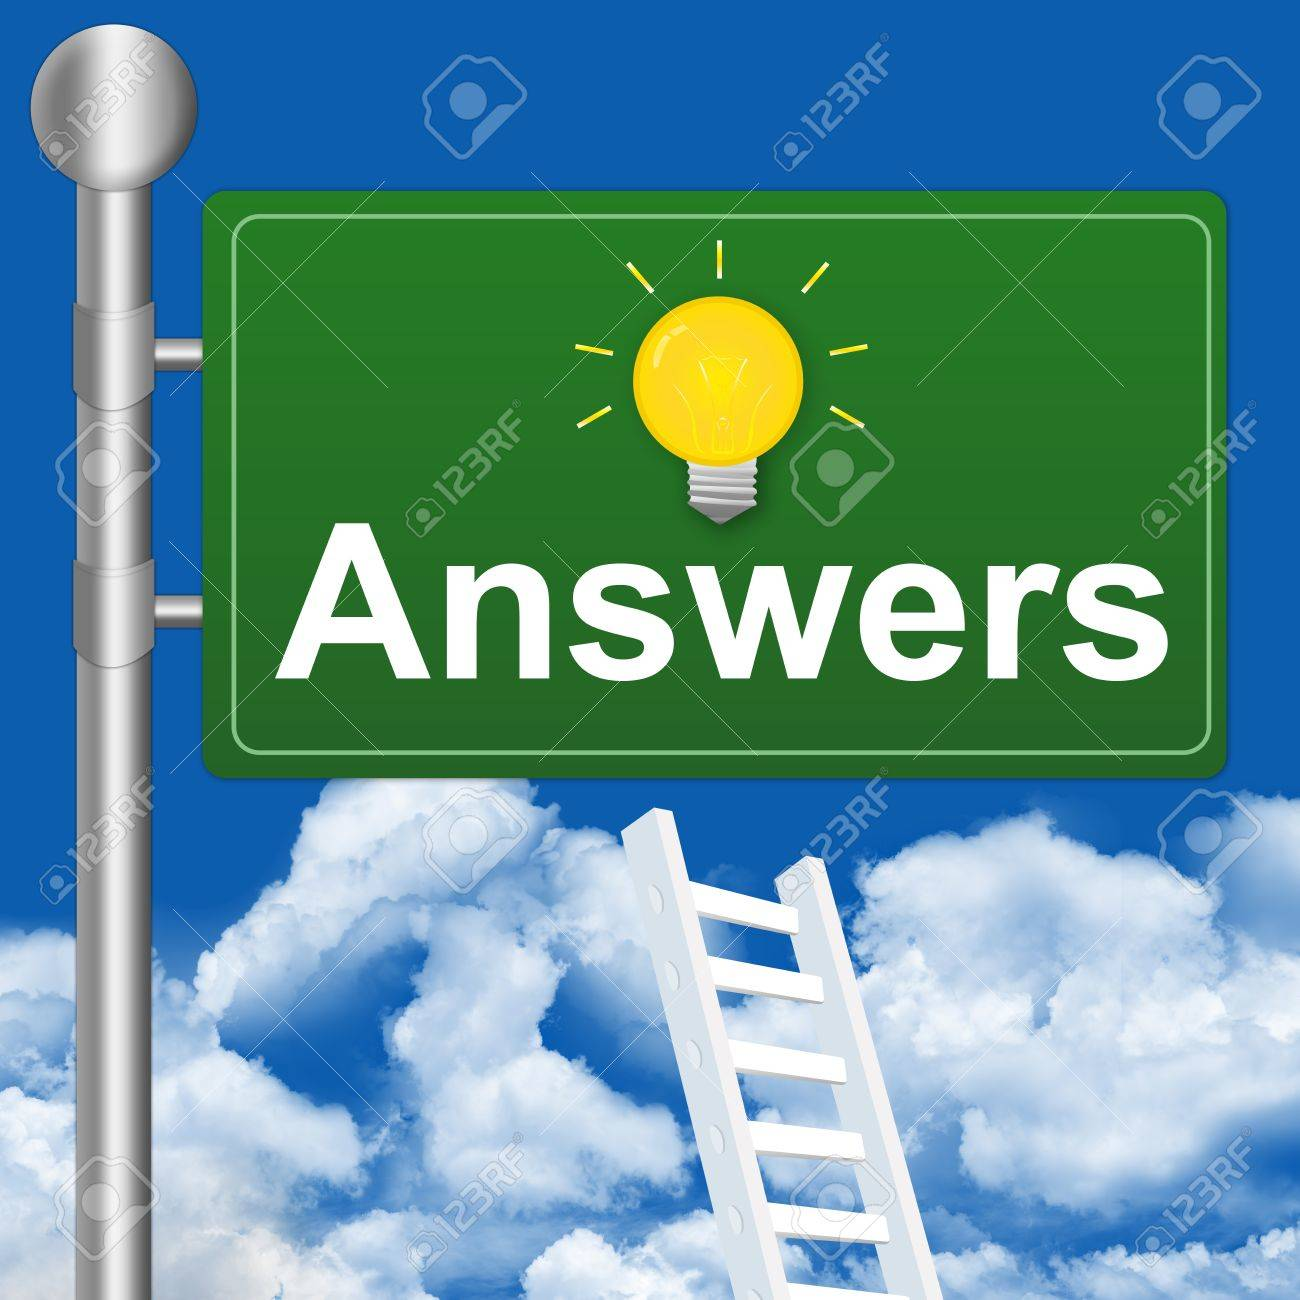 Answer With Light Bulb on Highway Street Sign Stock Photo - 14670955